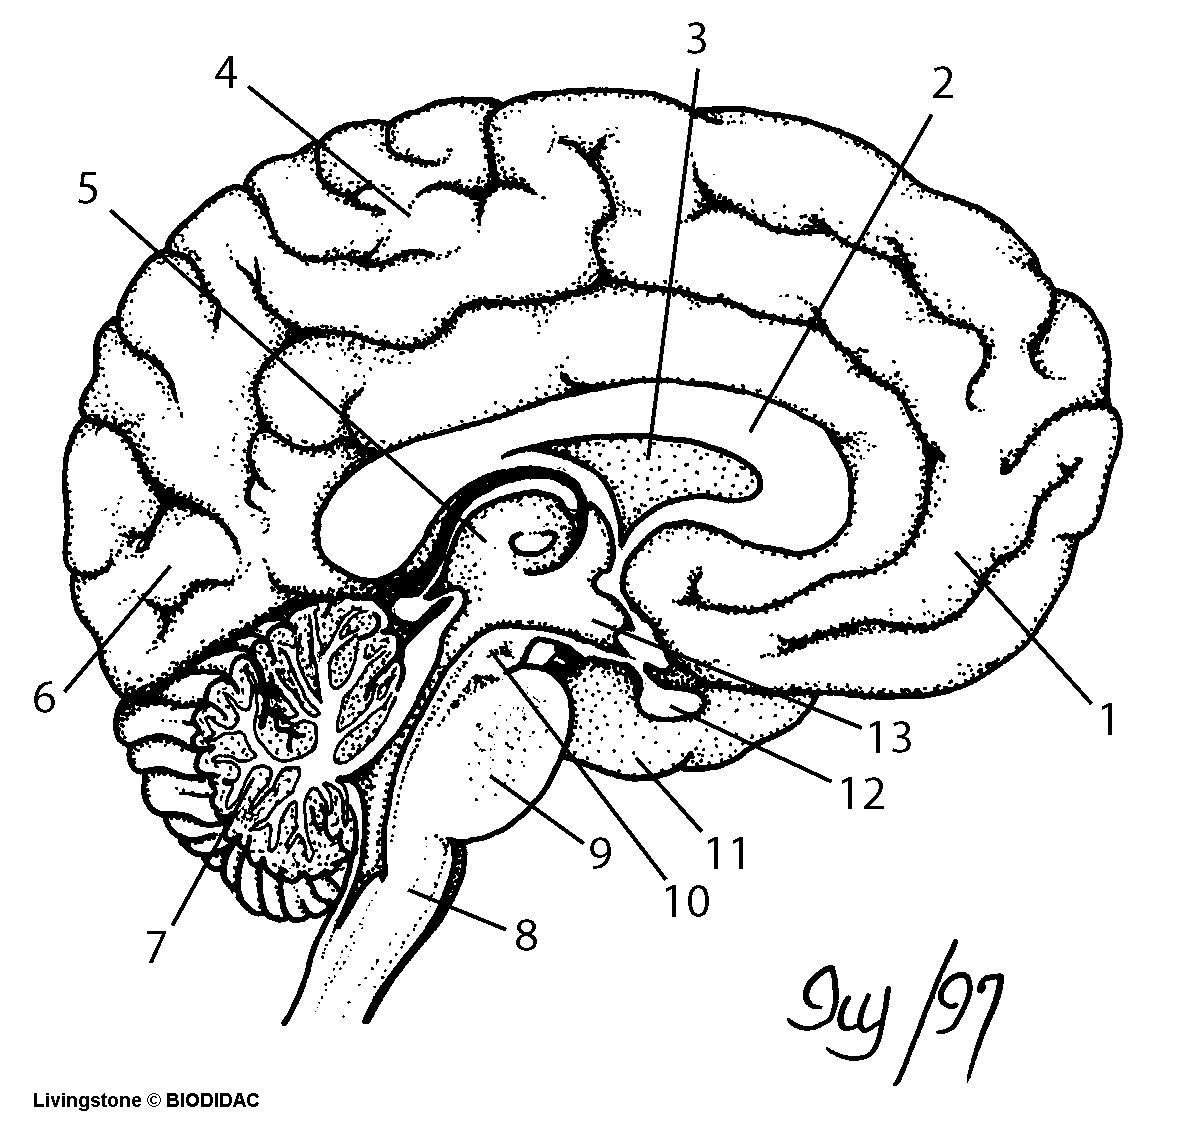 worksheet Brain Labeling Worksheet inside the brain diagram worksheet images of coloring pages for kids page